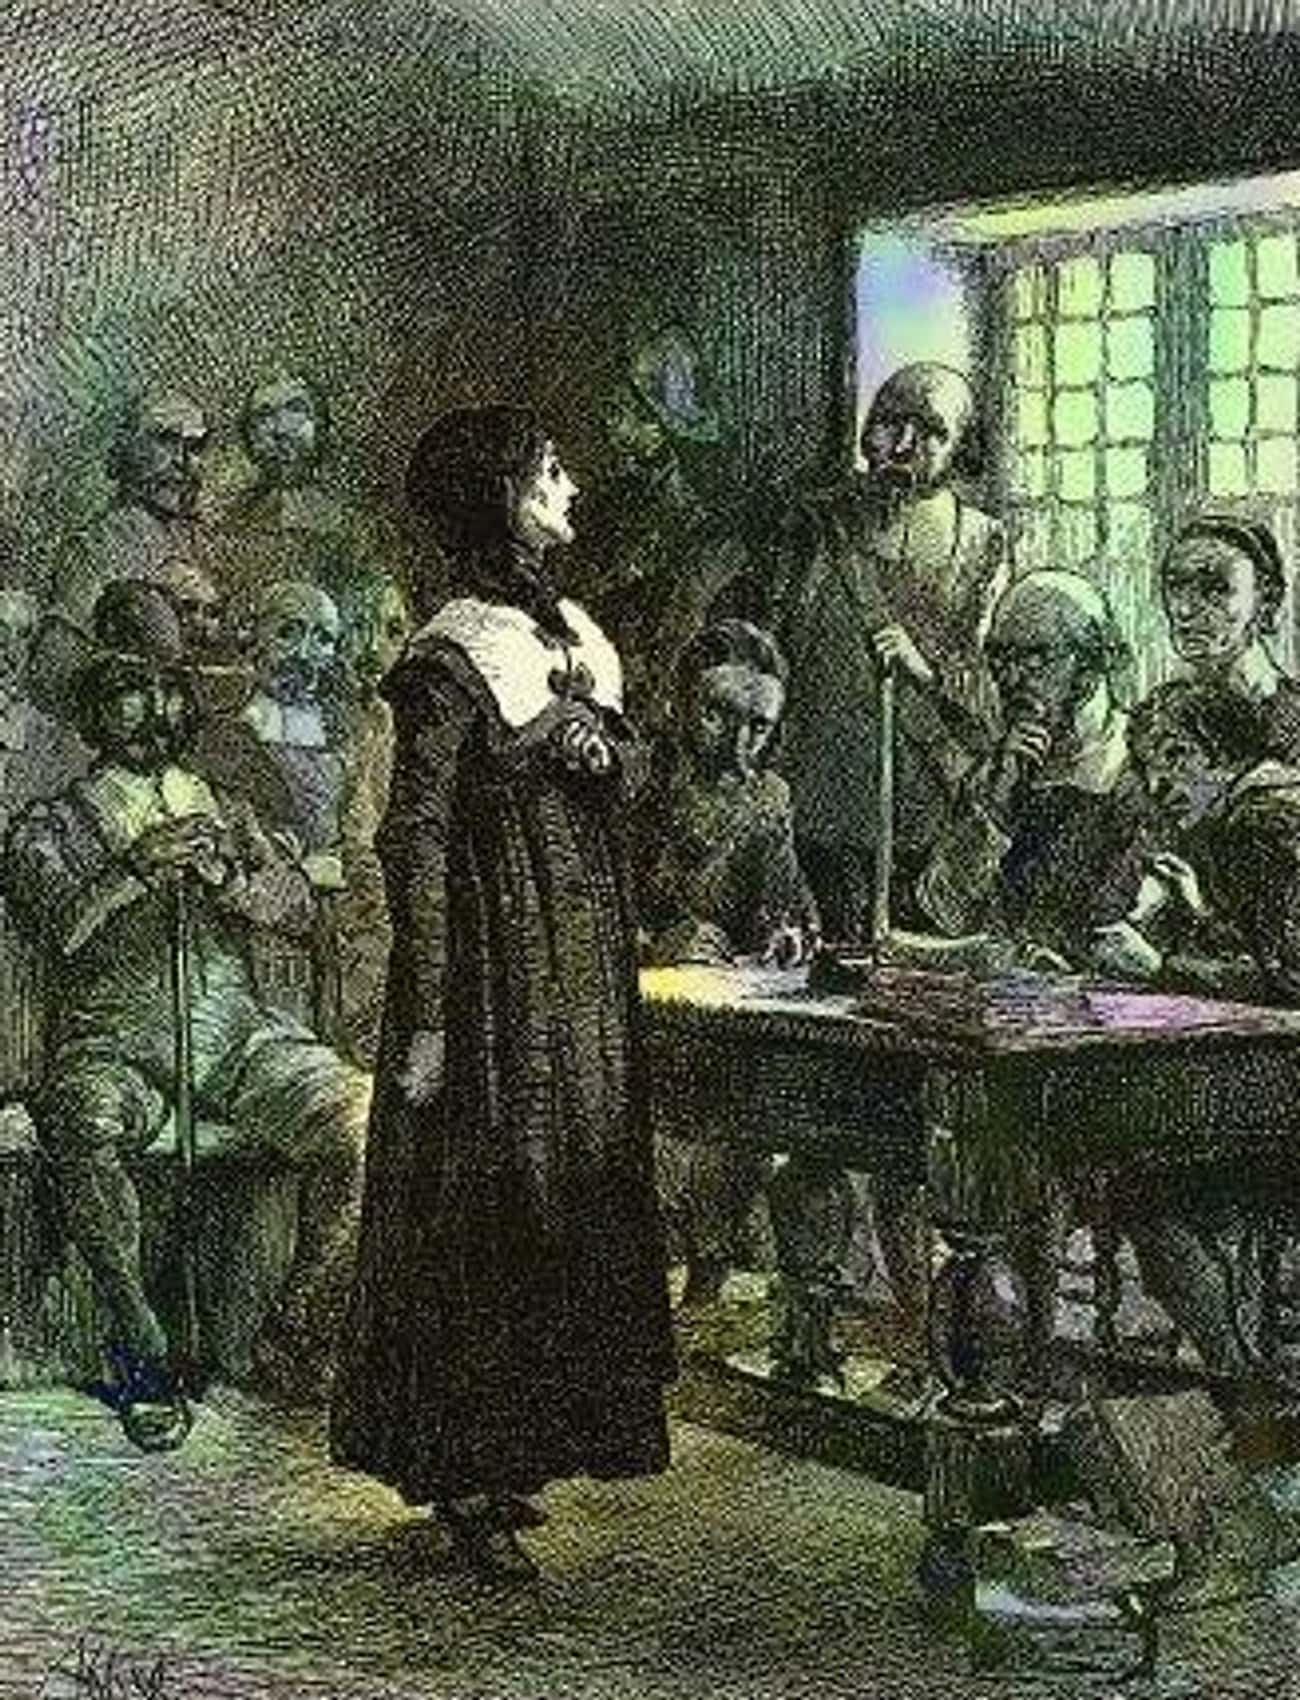 Anne Hutchinson Was A Revoluti is listed (or ranked) 3 on the list Strange Stories You Might Not Know About Colonial Americans